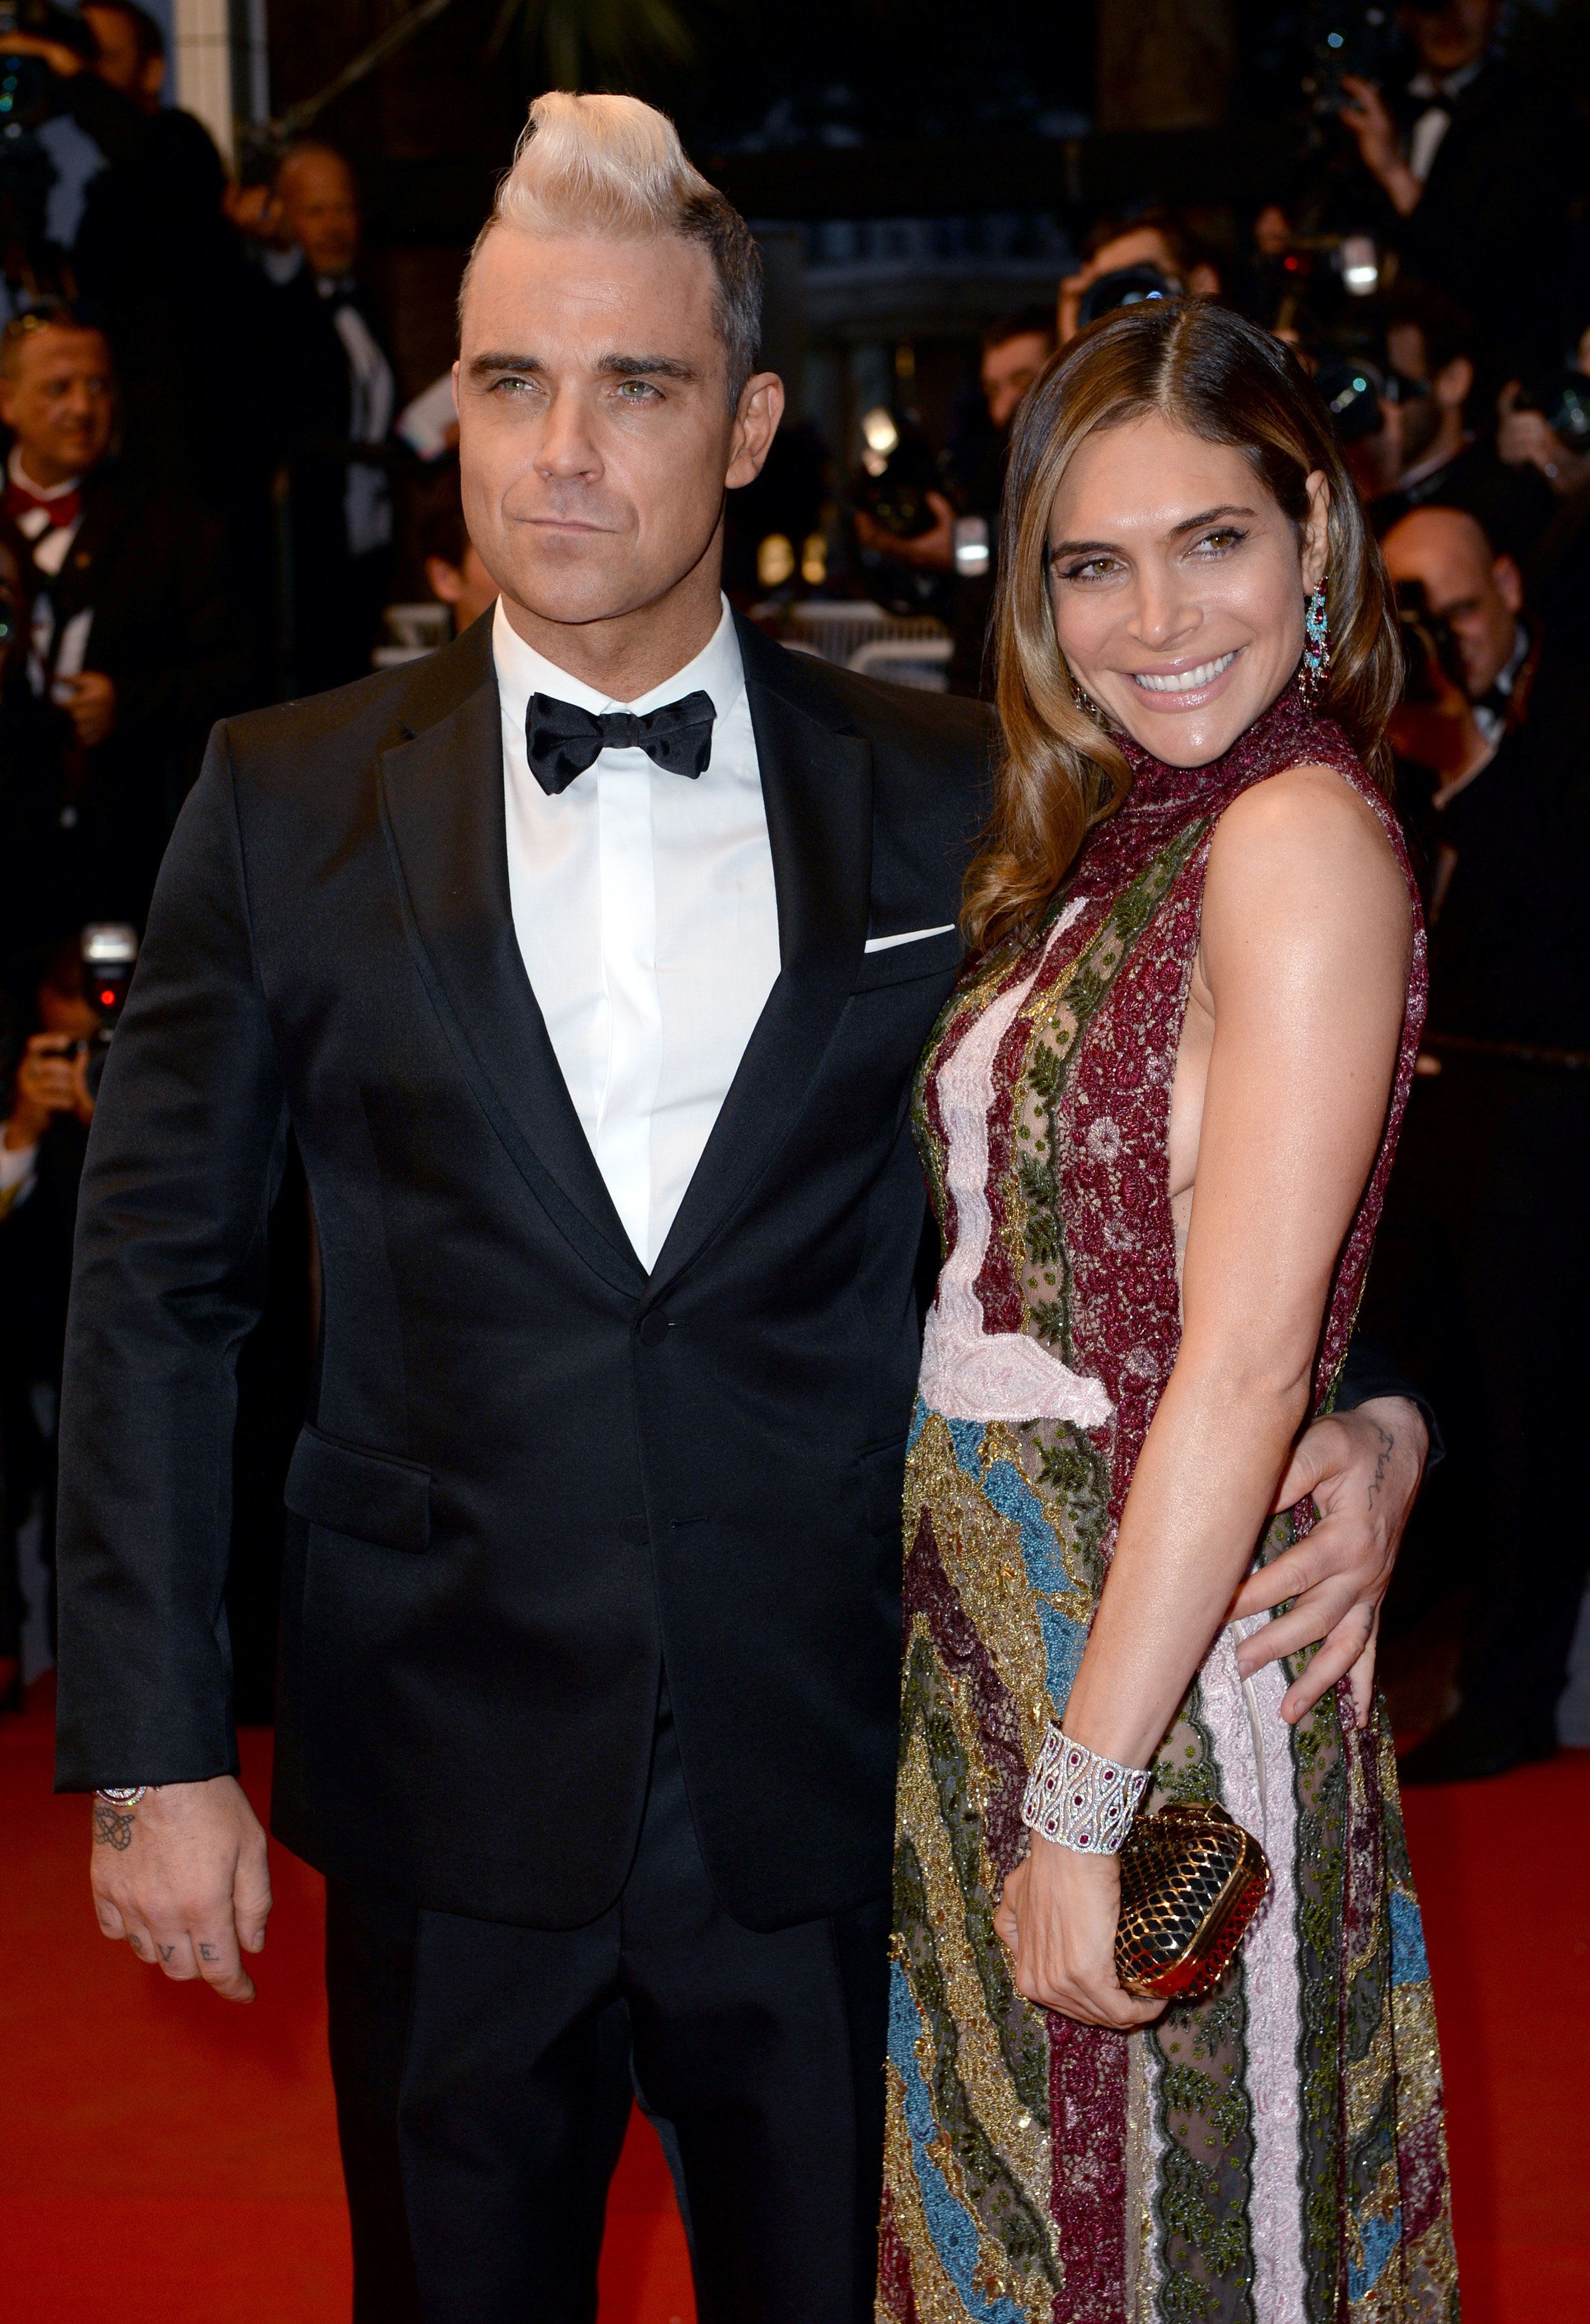 Robbie Williams And Ayda Field Could Be Launching A TV